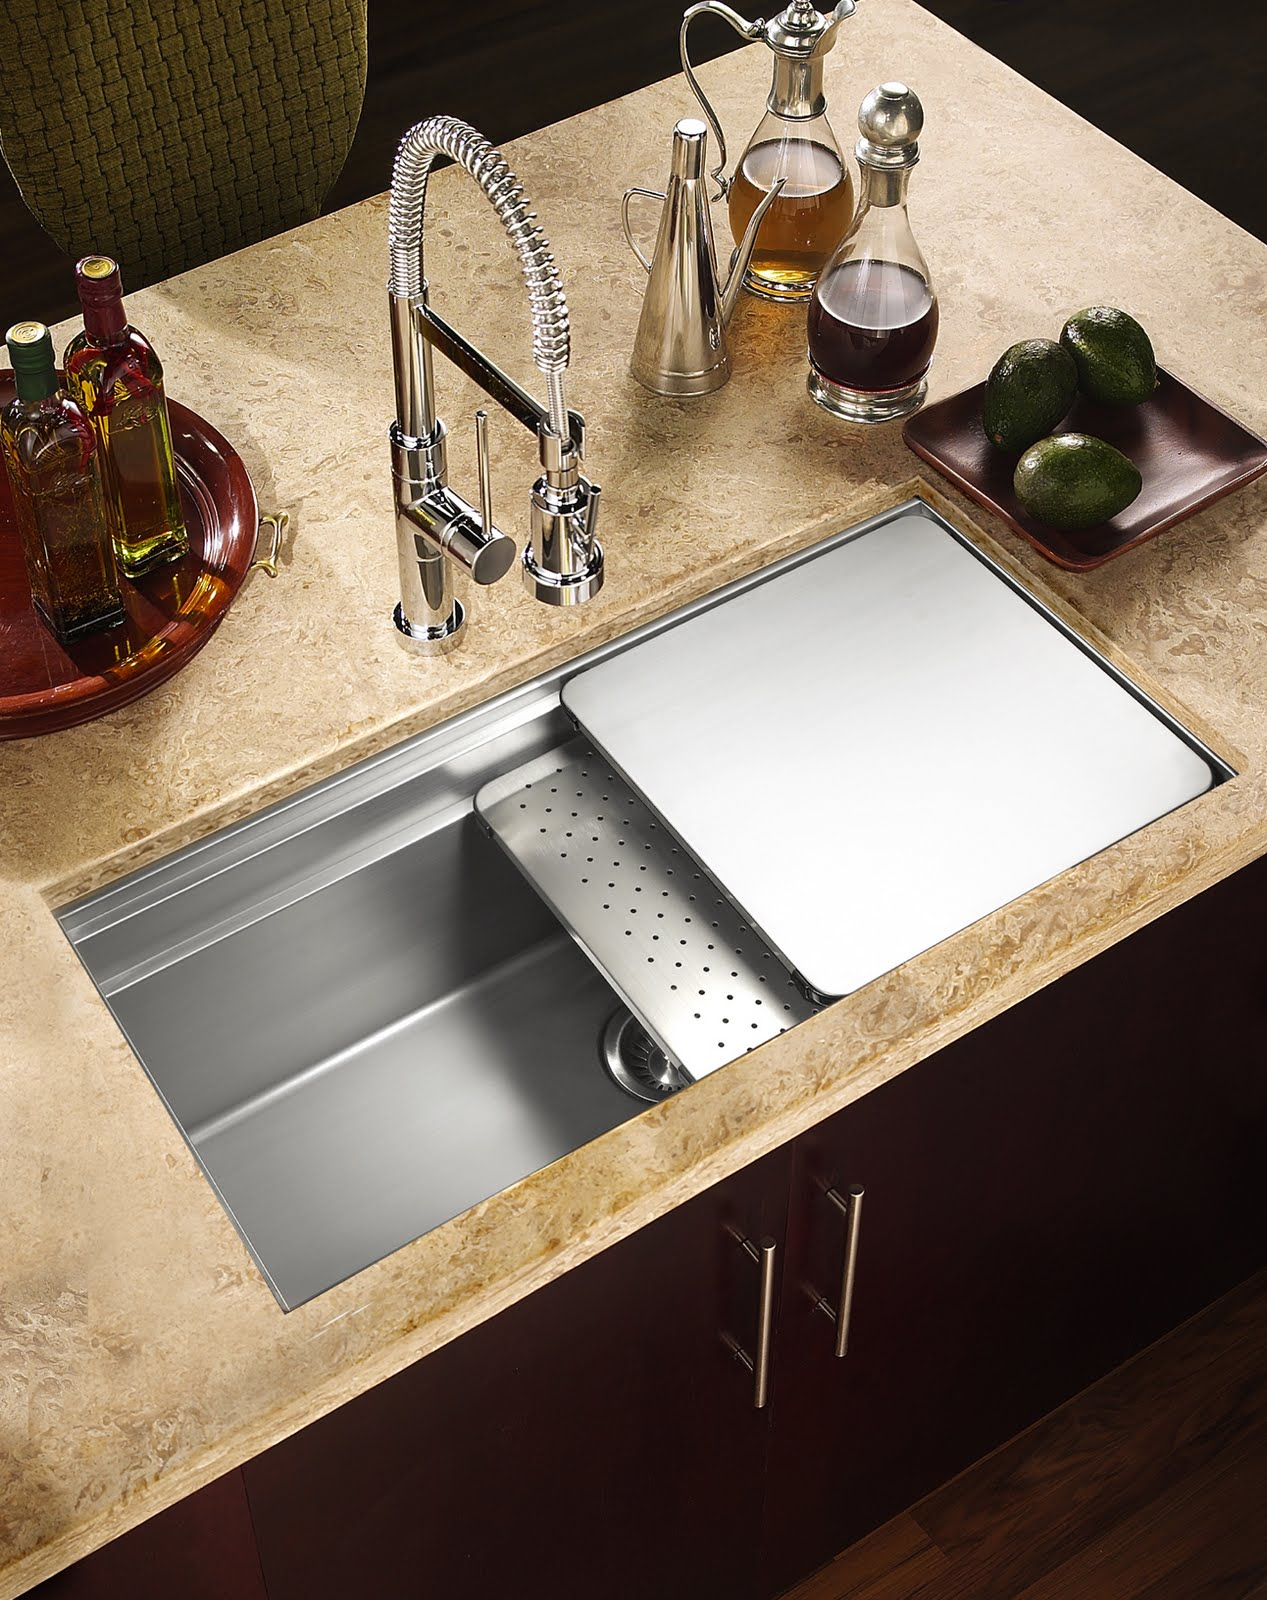 Design of kitchen sink homesfeed oil kitceb sink cabinet workwithnaturefo